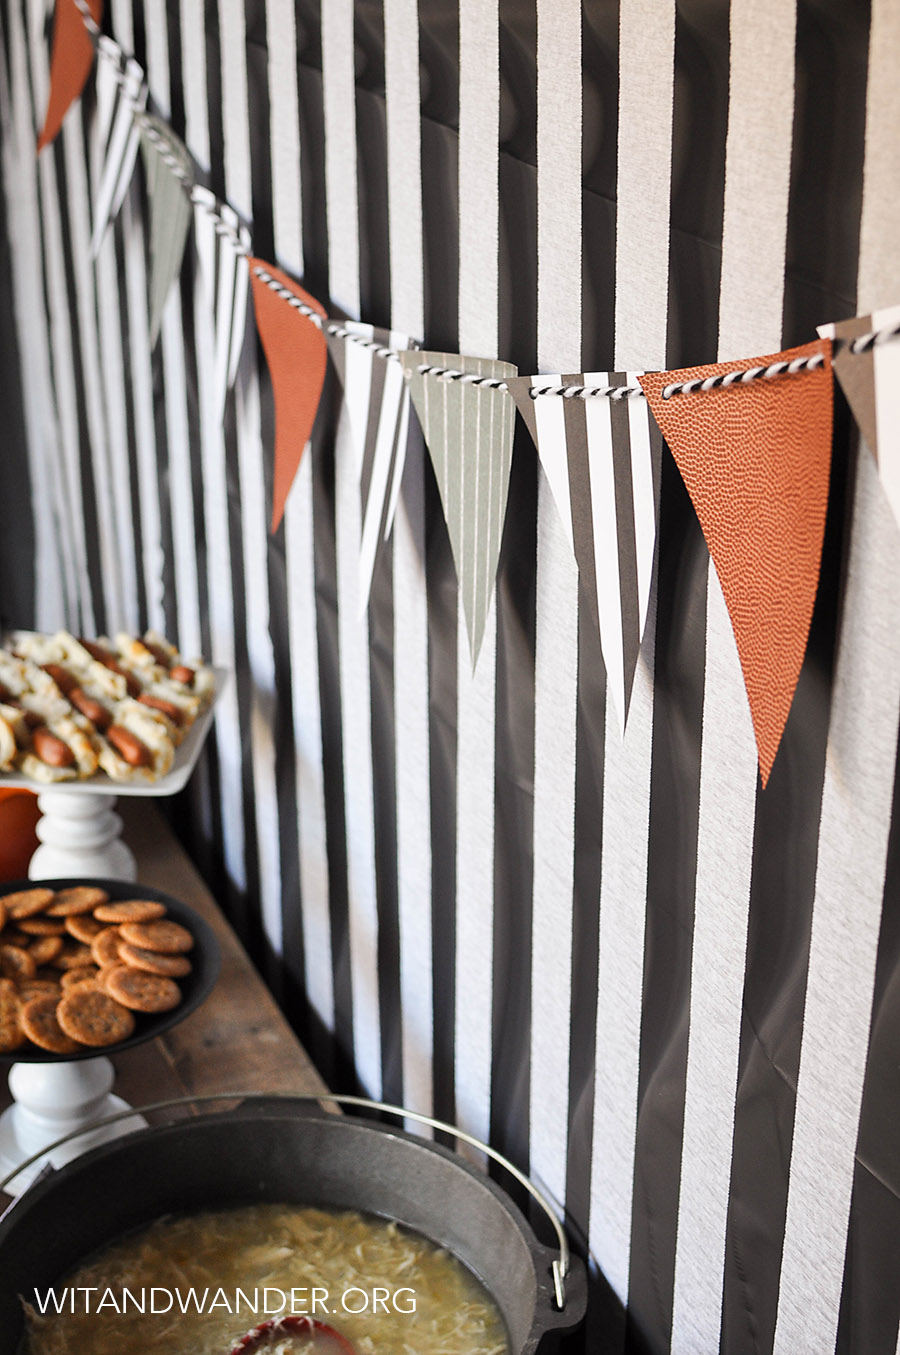 Referee Black and White Striped Back Drop - Chili Cook Off Tailgate Party | Wit & Wander